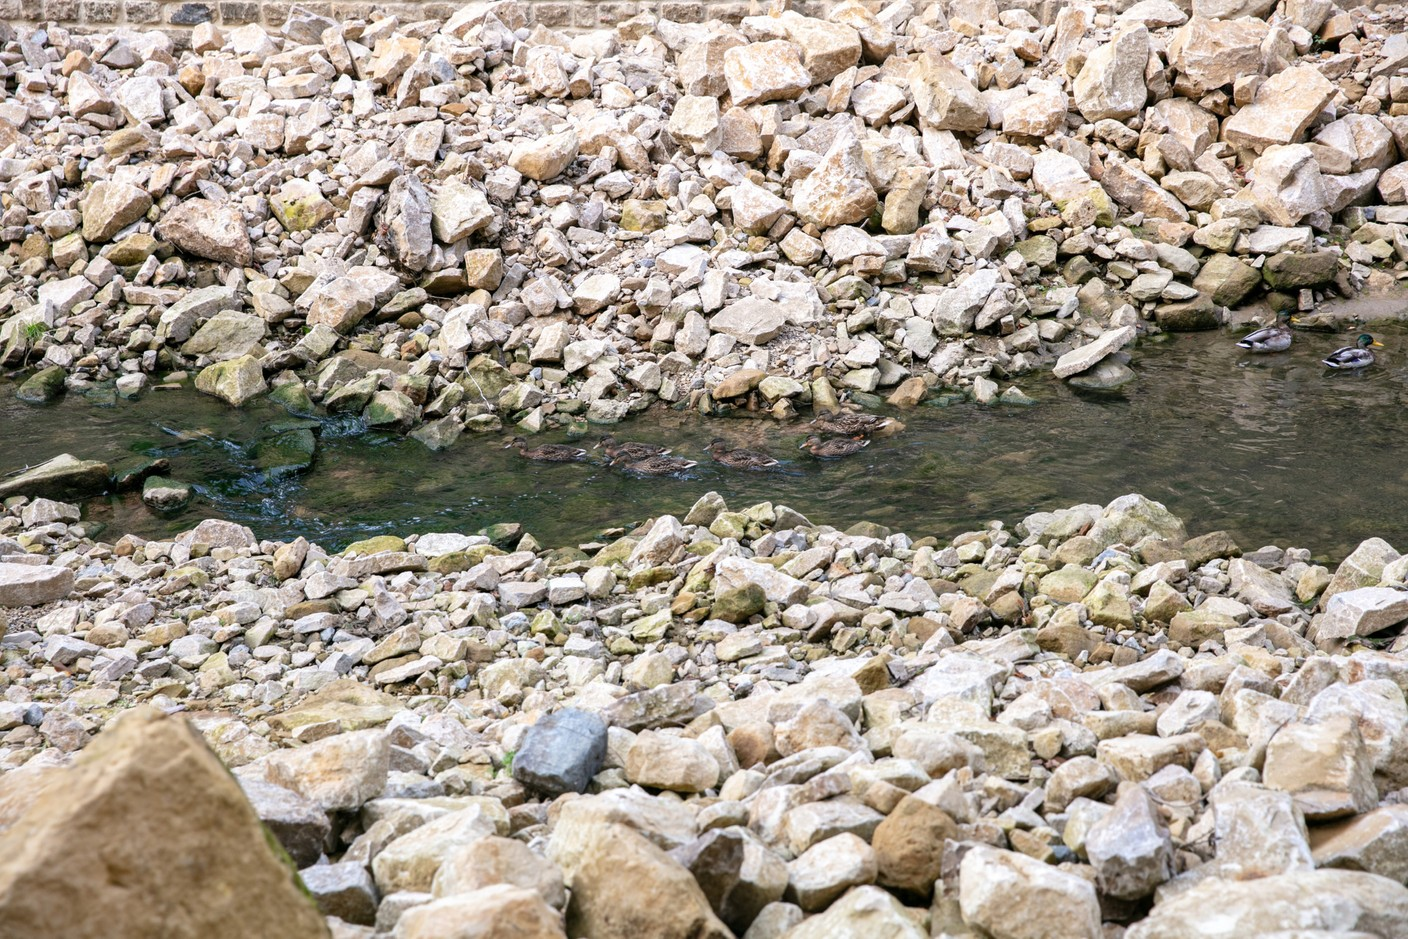 The watercourse flows in a more natural way, across natural stones. Photo: Romain Gamba / Maison Moderne